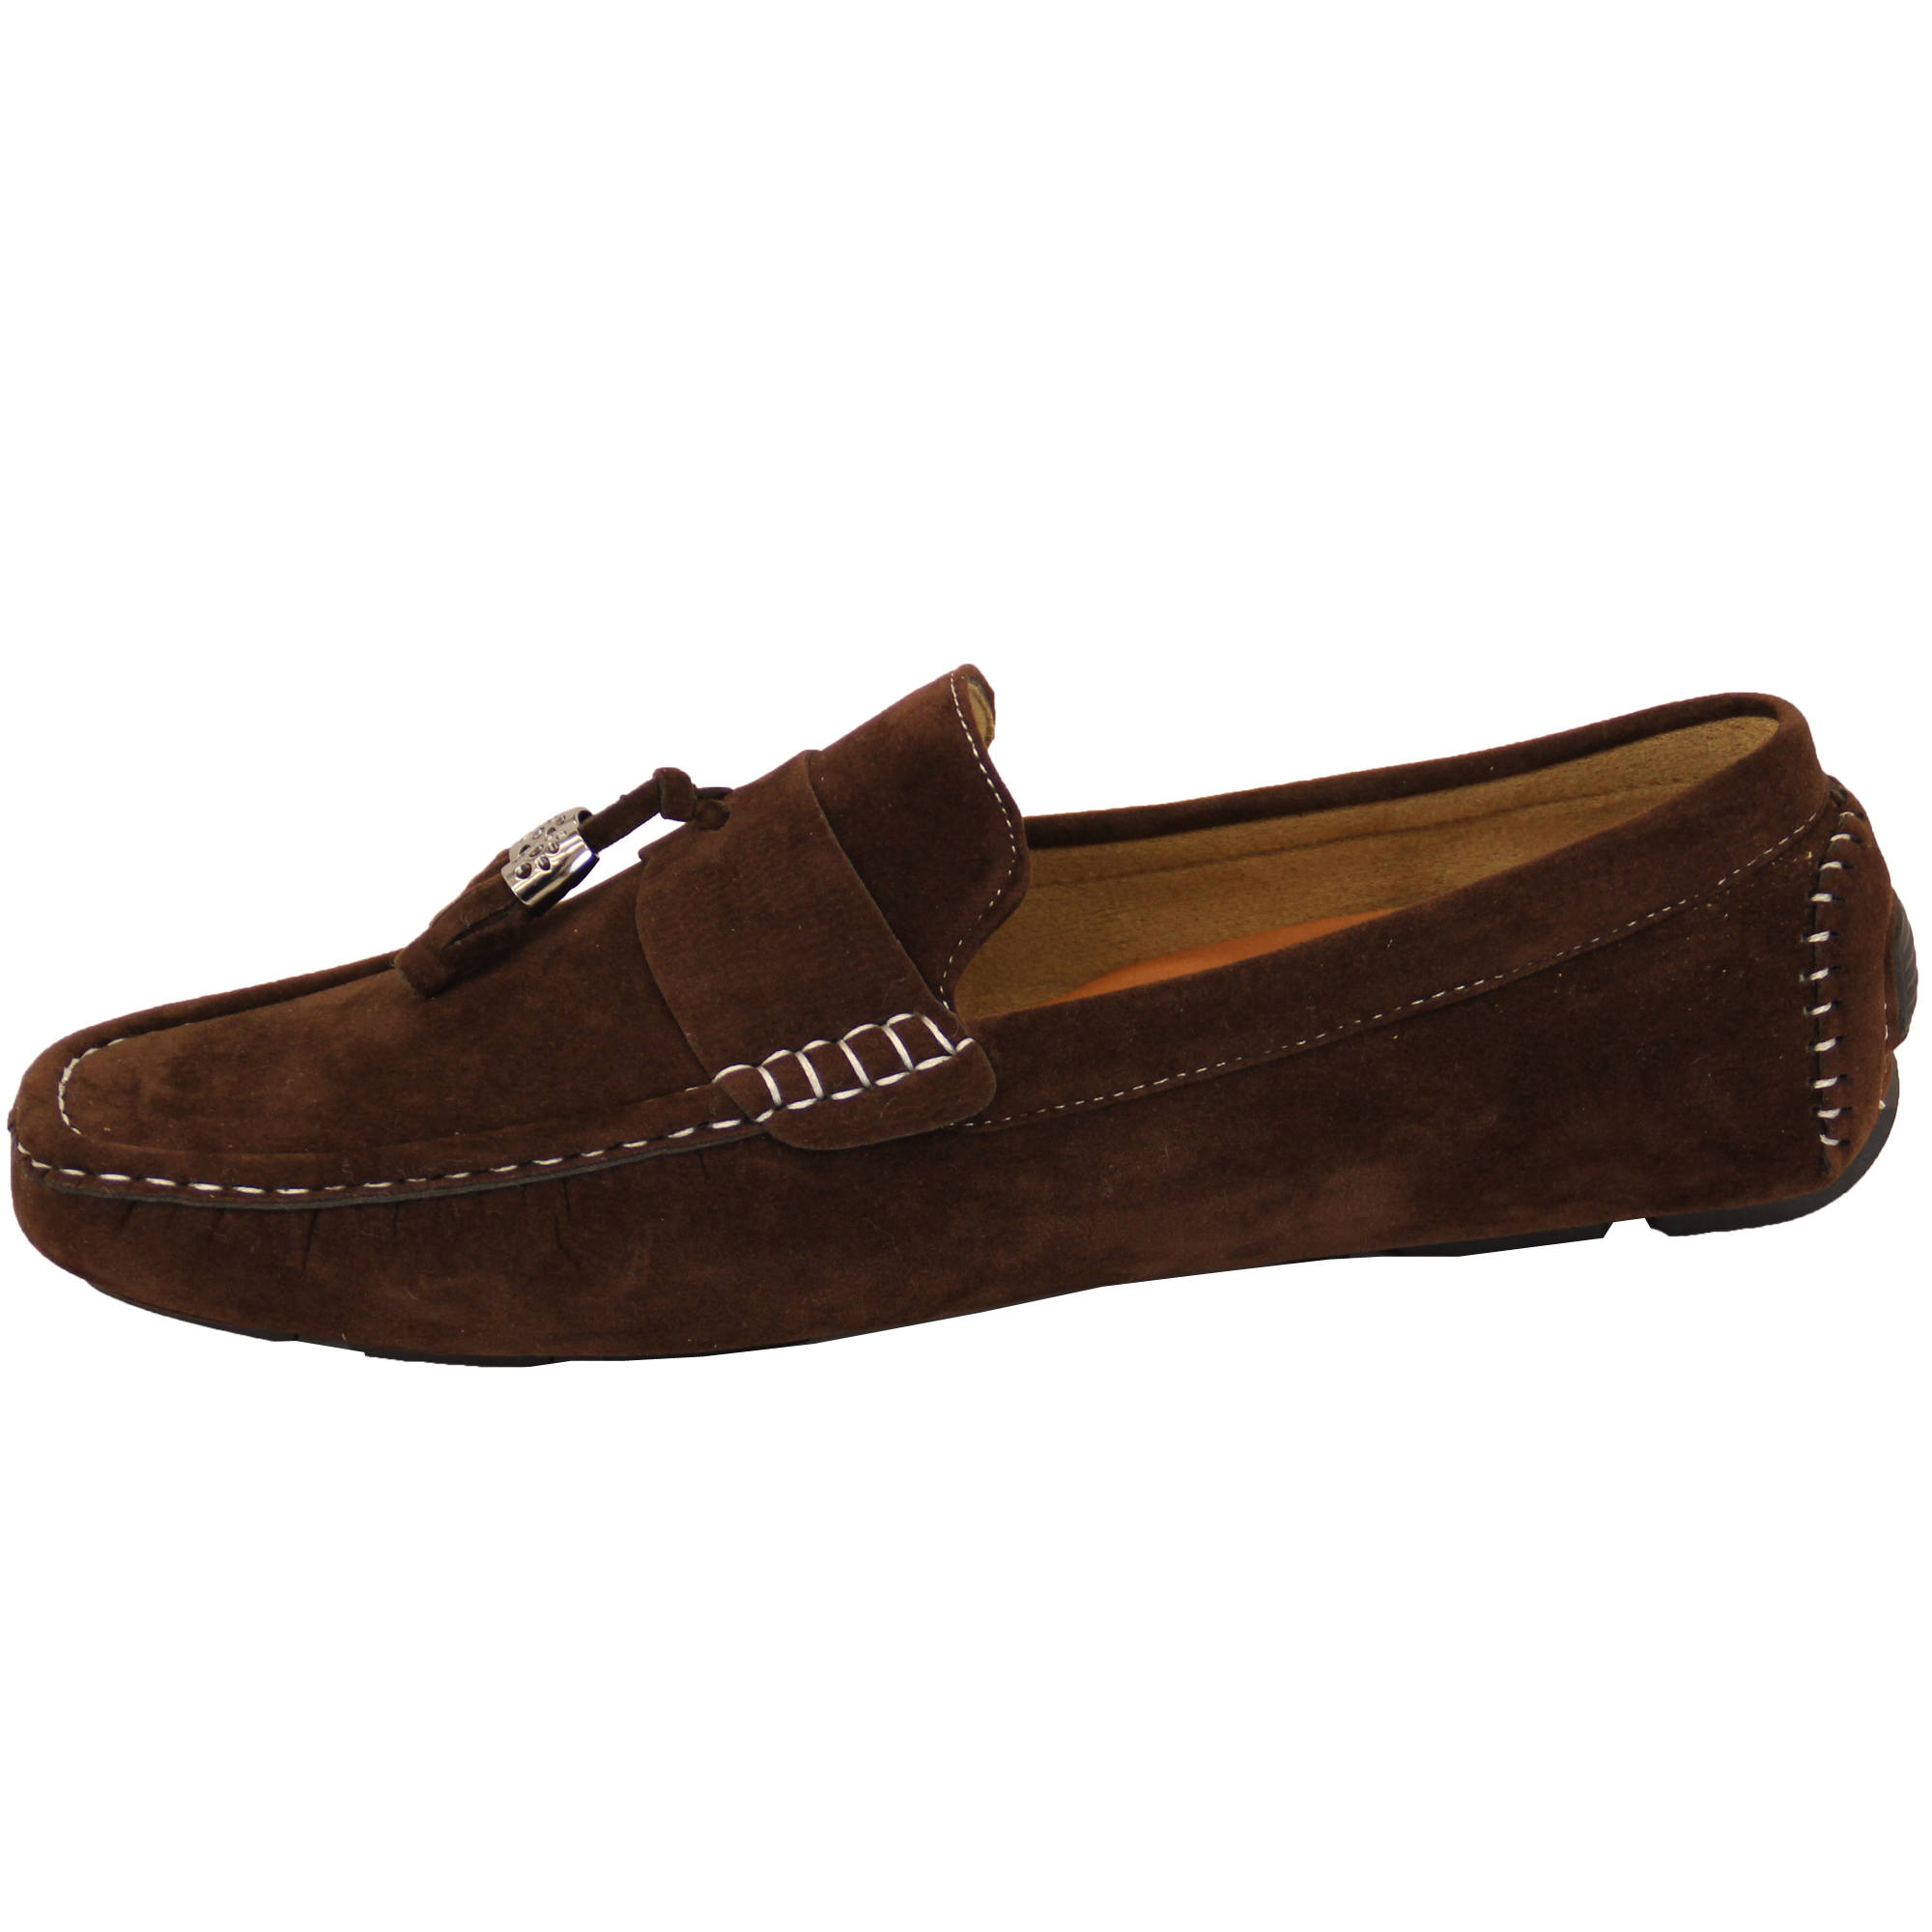 mens moccasins suede look shoes slip on boat driving